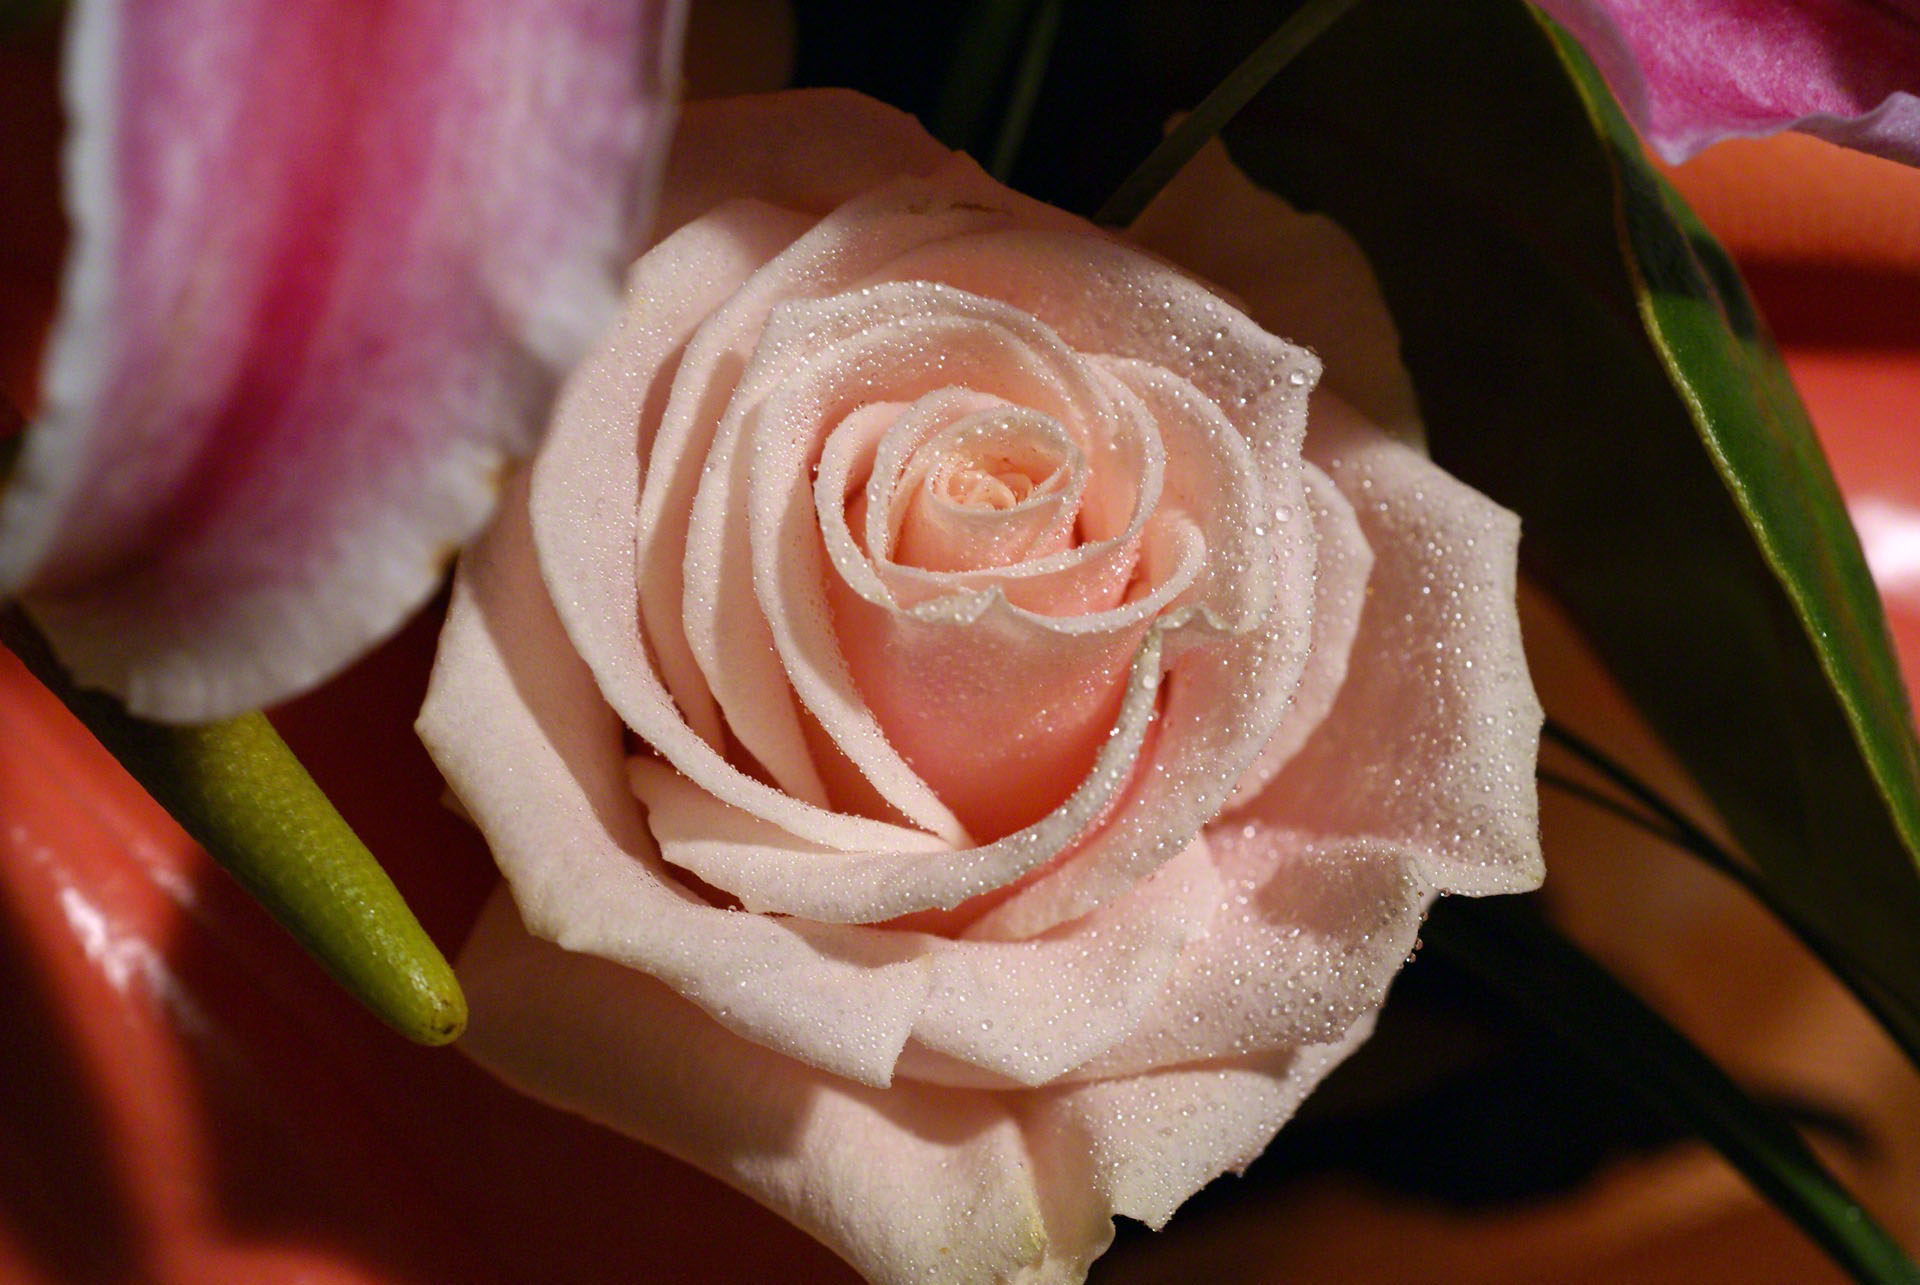 http://www.fabiovisentin.com/photography/photo/12/peach-rose-macro-dsc01197.jpg